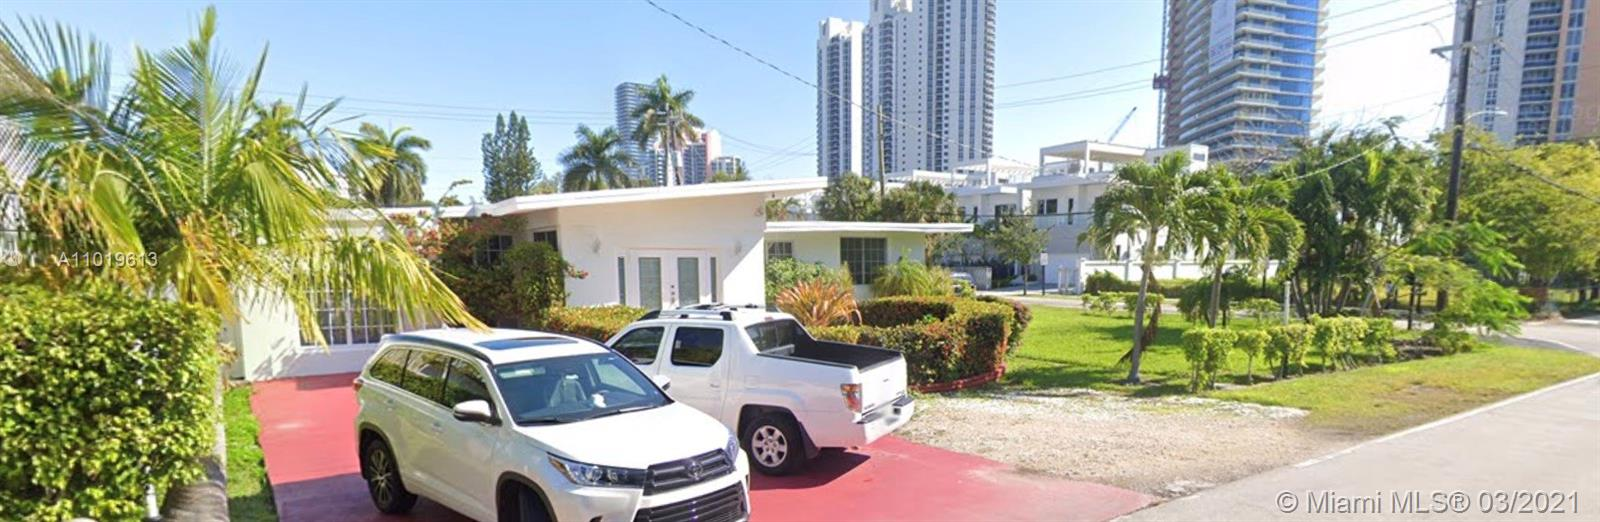 201 189th St, Sunny Isles Beach, Florida 33160